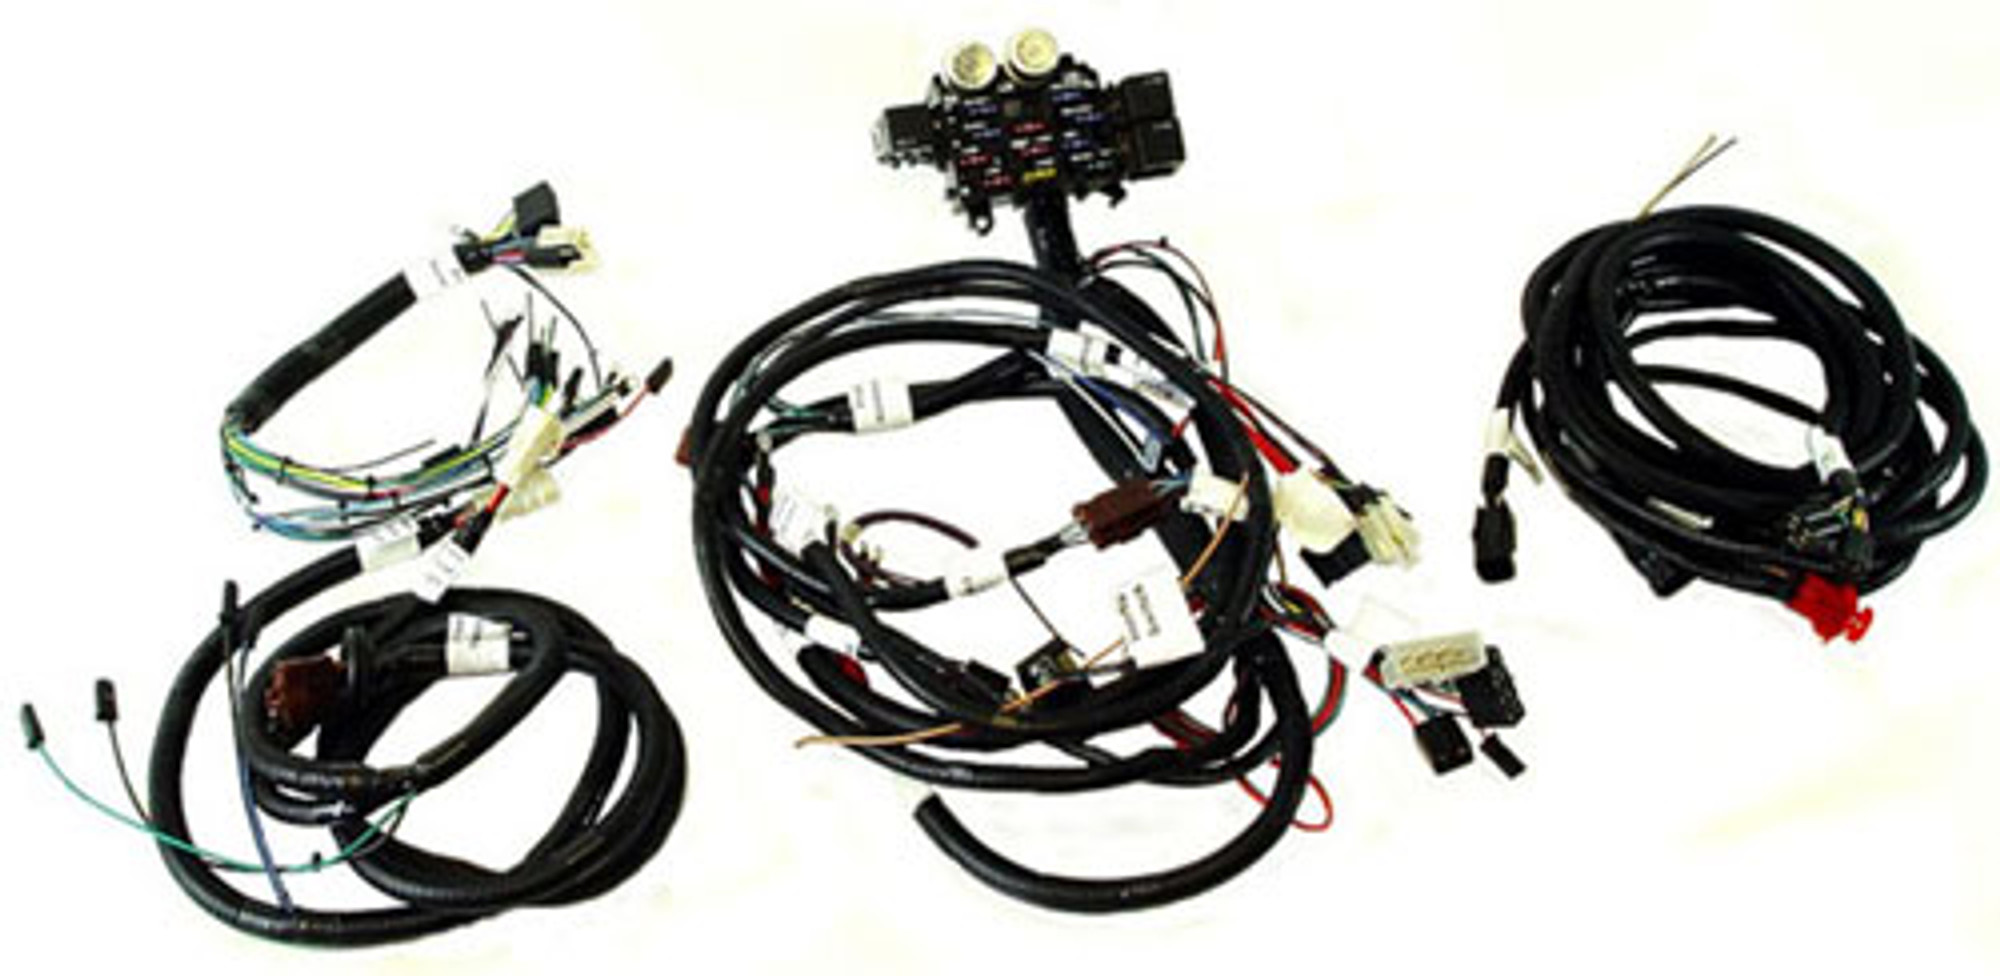 14503 chassis wiring harness factory five parts catalog rh factoryfiveparts com chassis wiring harness 2011 ram 1500 chassis wiring harness 2011 ram 1500